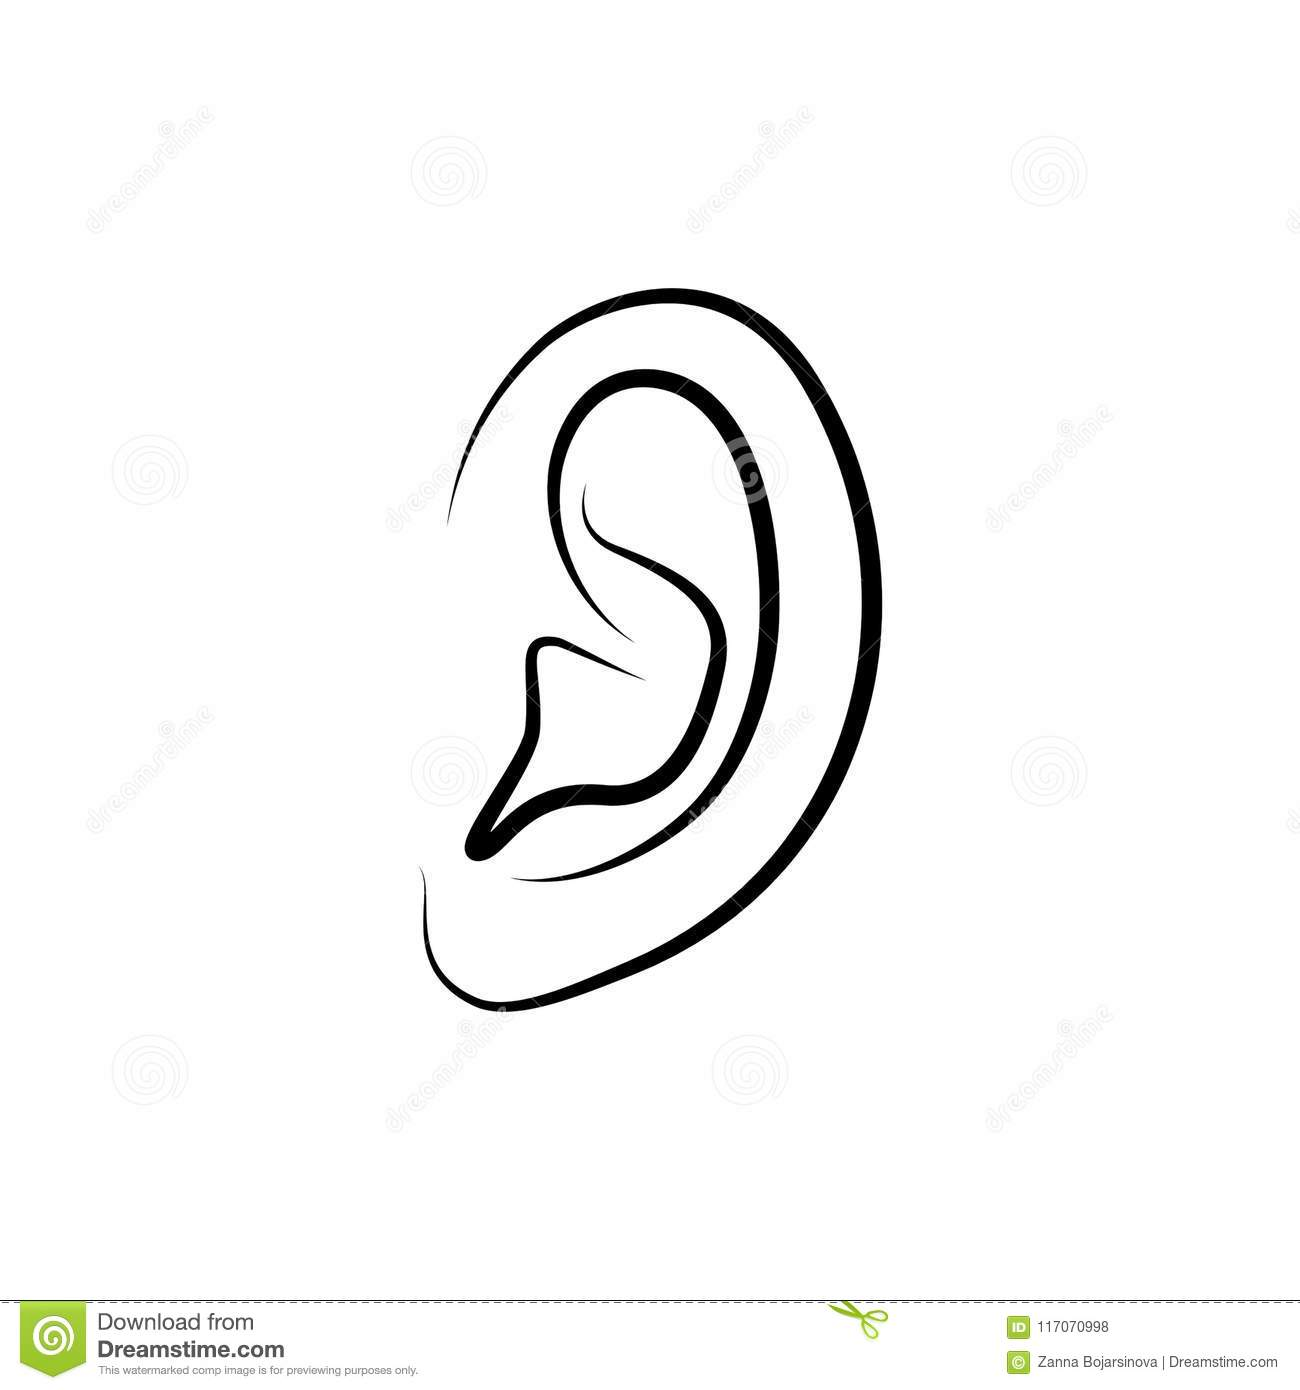 outline picture of ear outline ear icon stock vector illustration of outline picture ear of outline